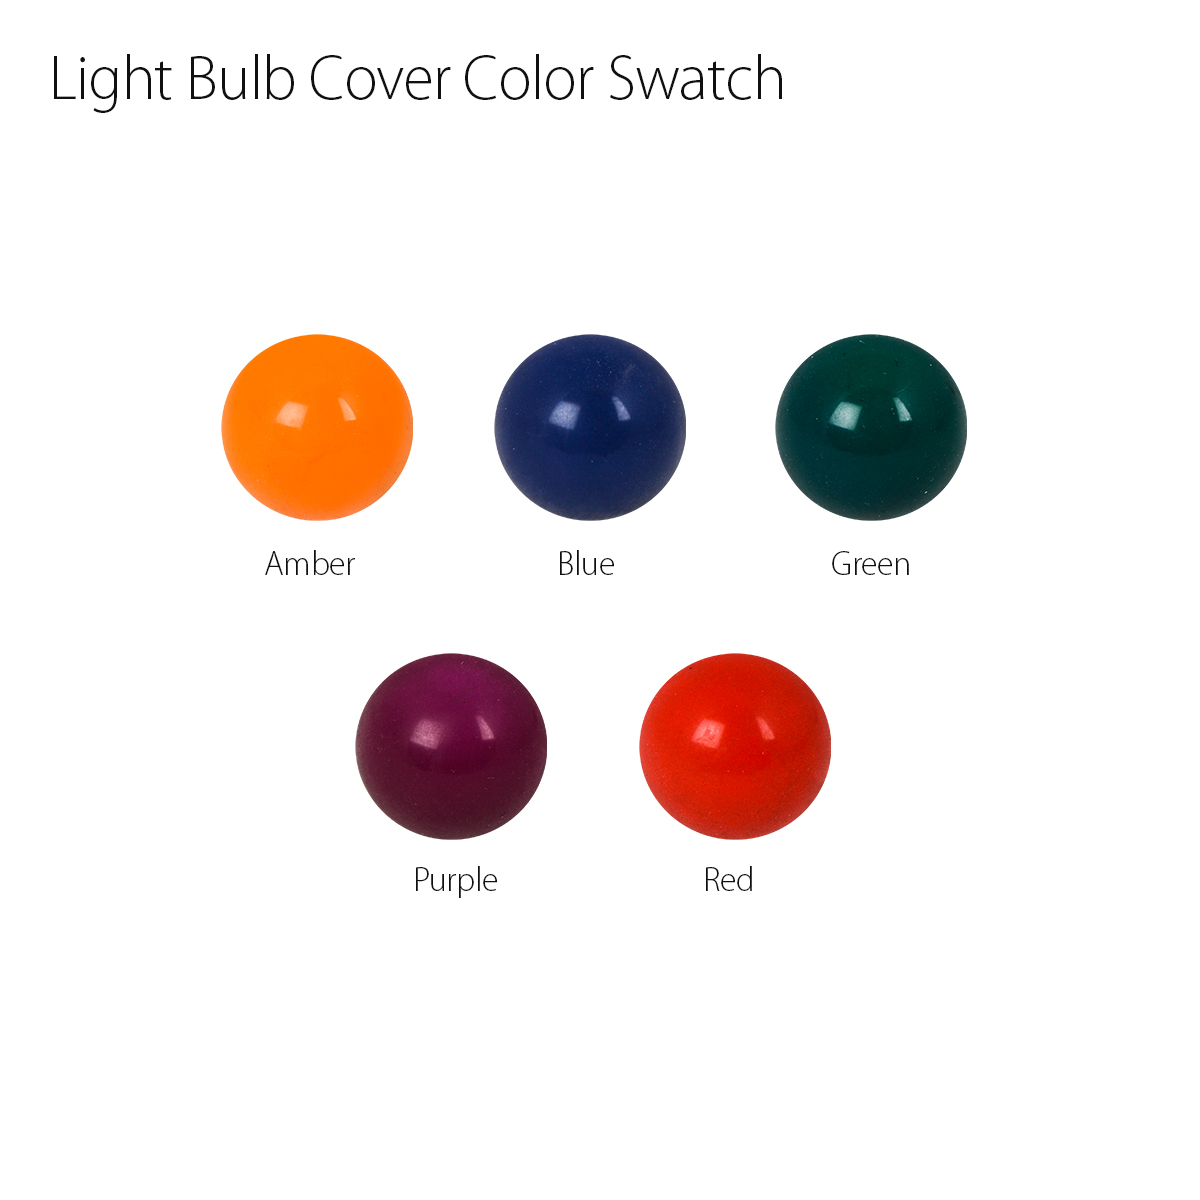 Medium Bulb Cover Color Swatch